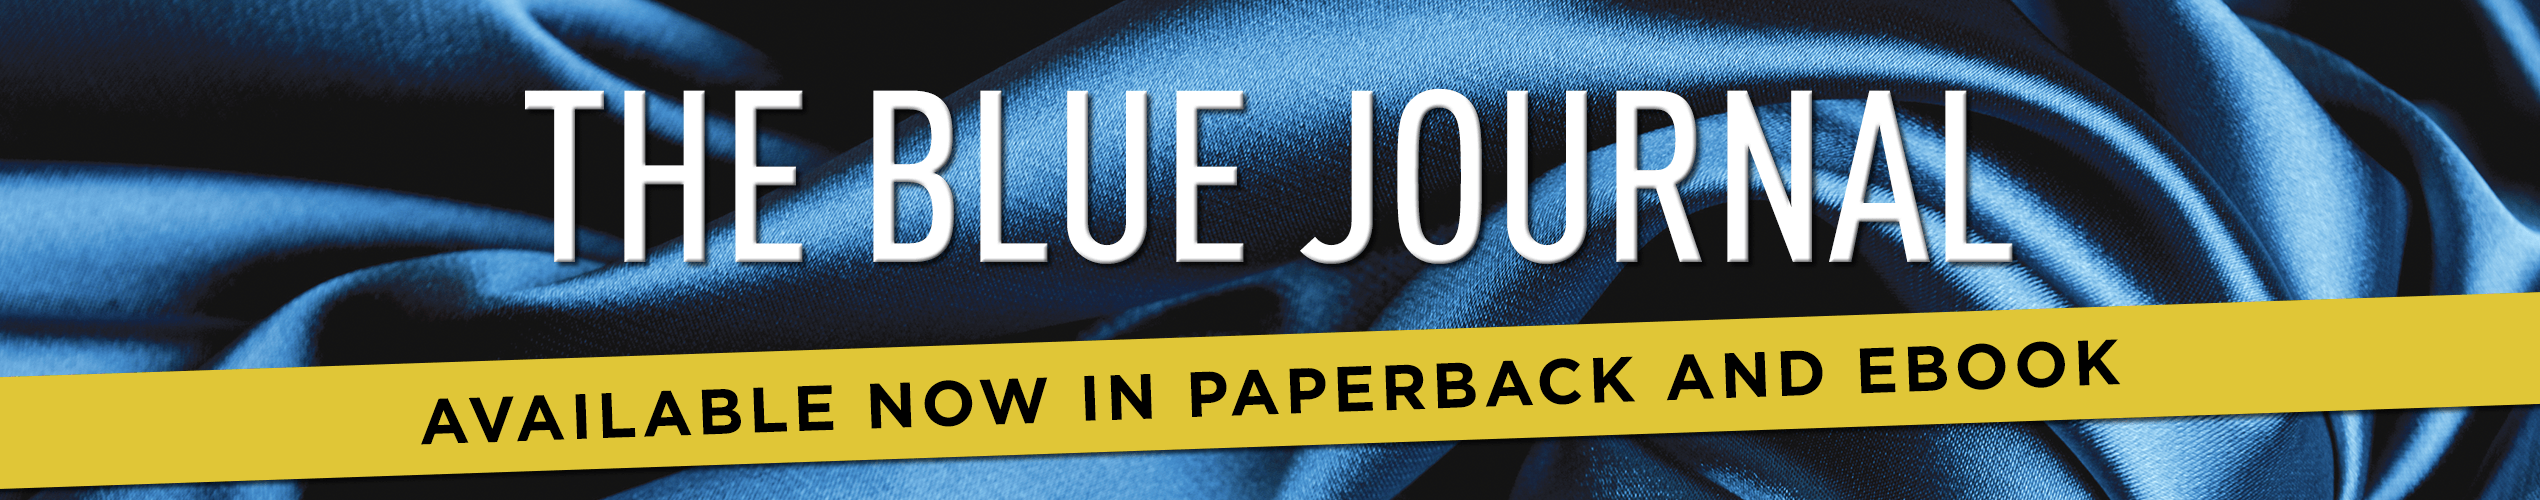 The Blue Journal by LT Graham, Available in Paperback and eBook